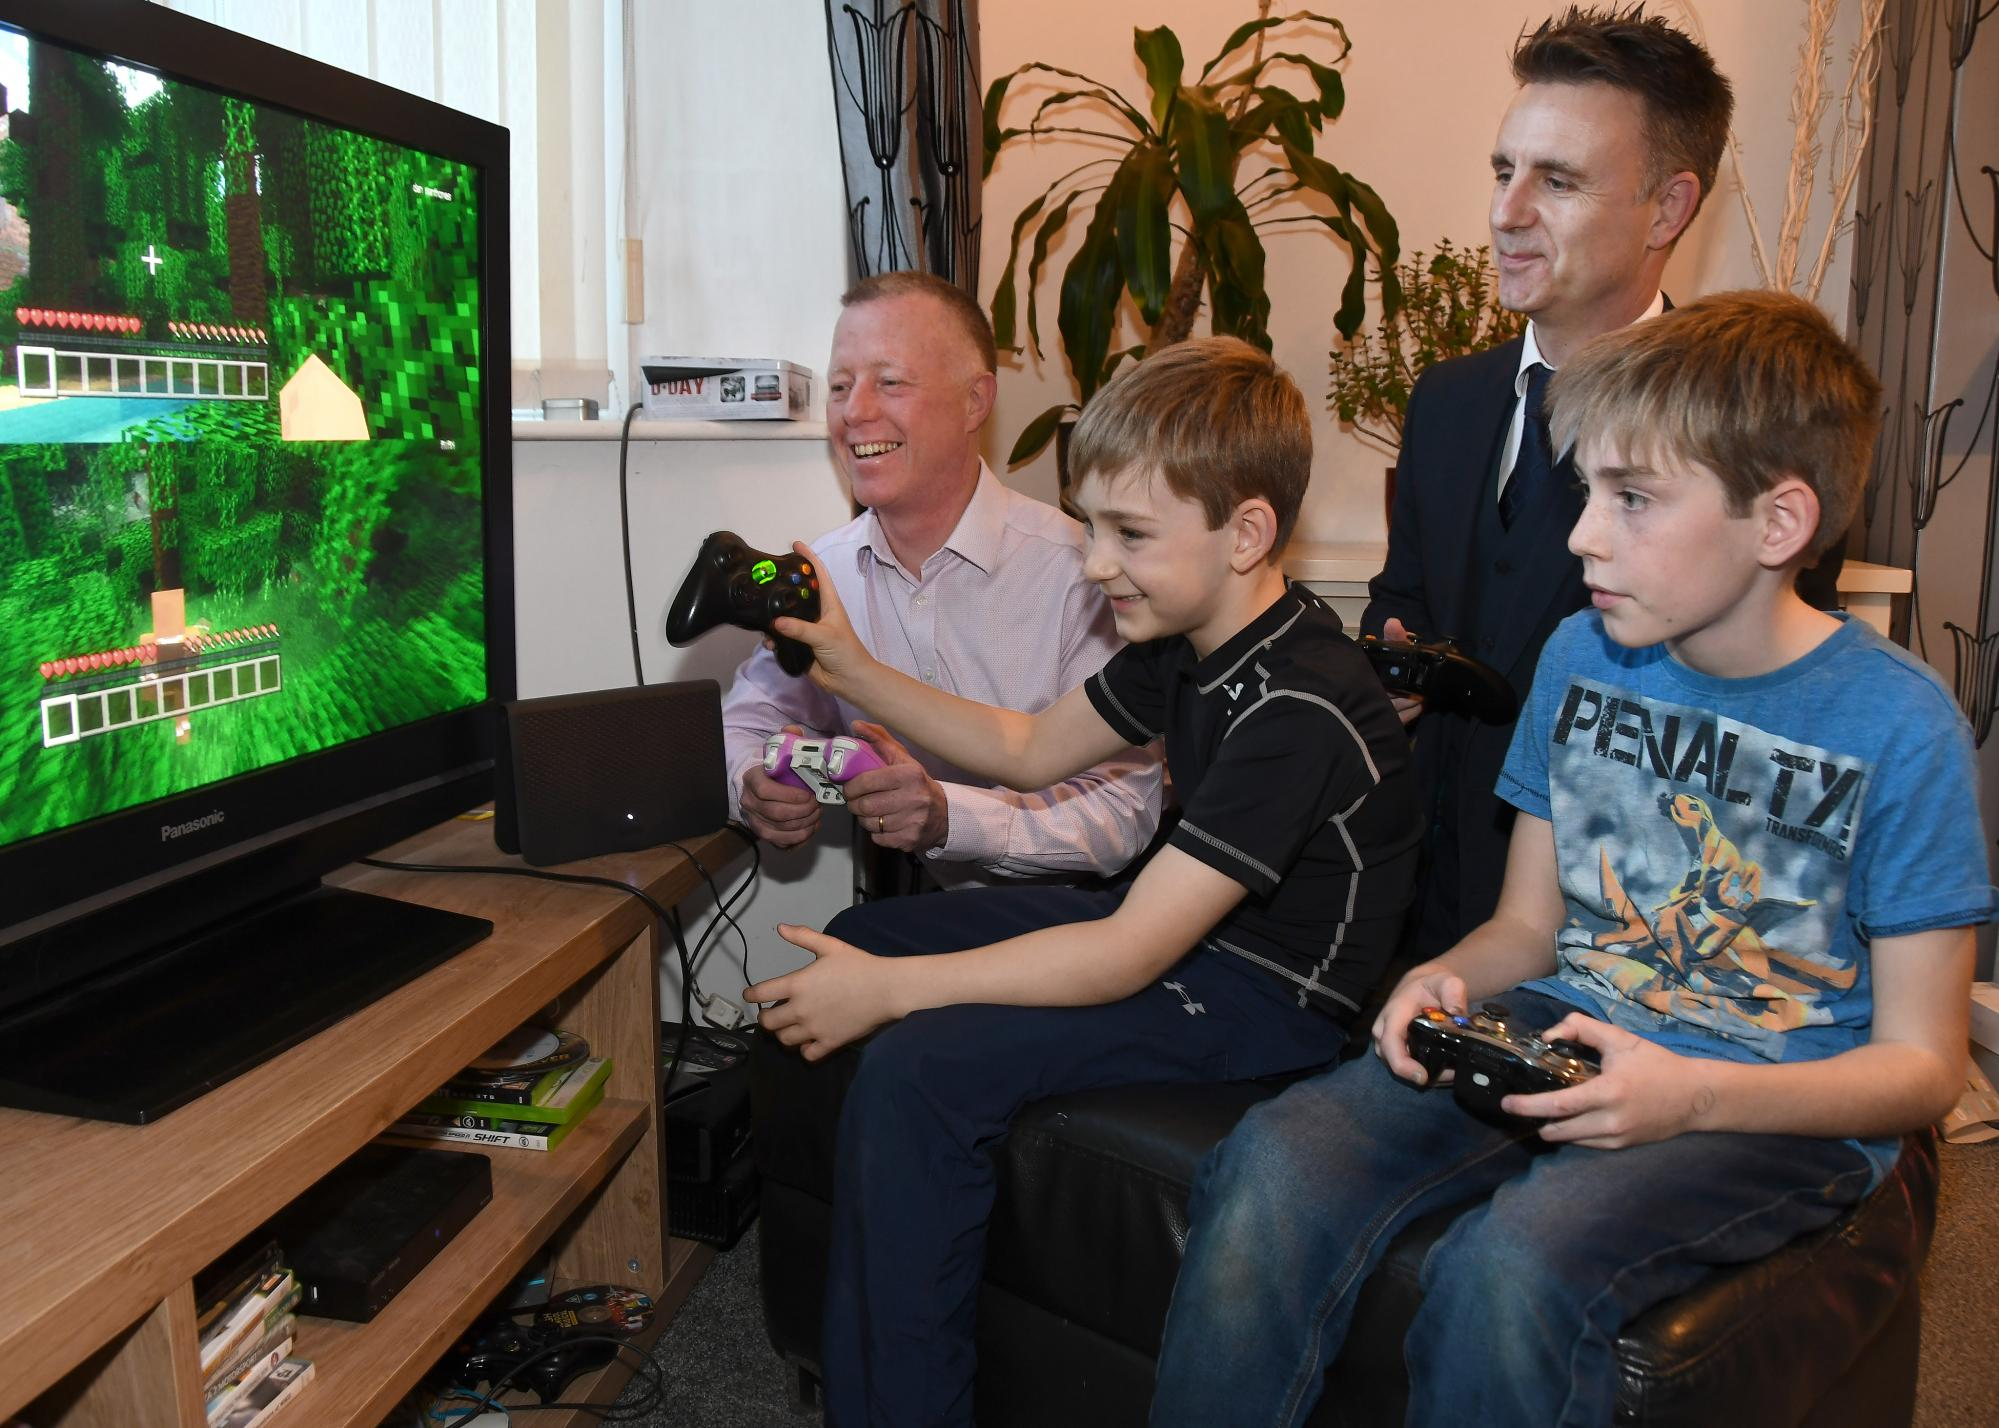 Paul Crane, TalkTalk, plays with James aged 7, Ryan, aged 11, and their father Richard Grayling at their home in Dringhouses (2)